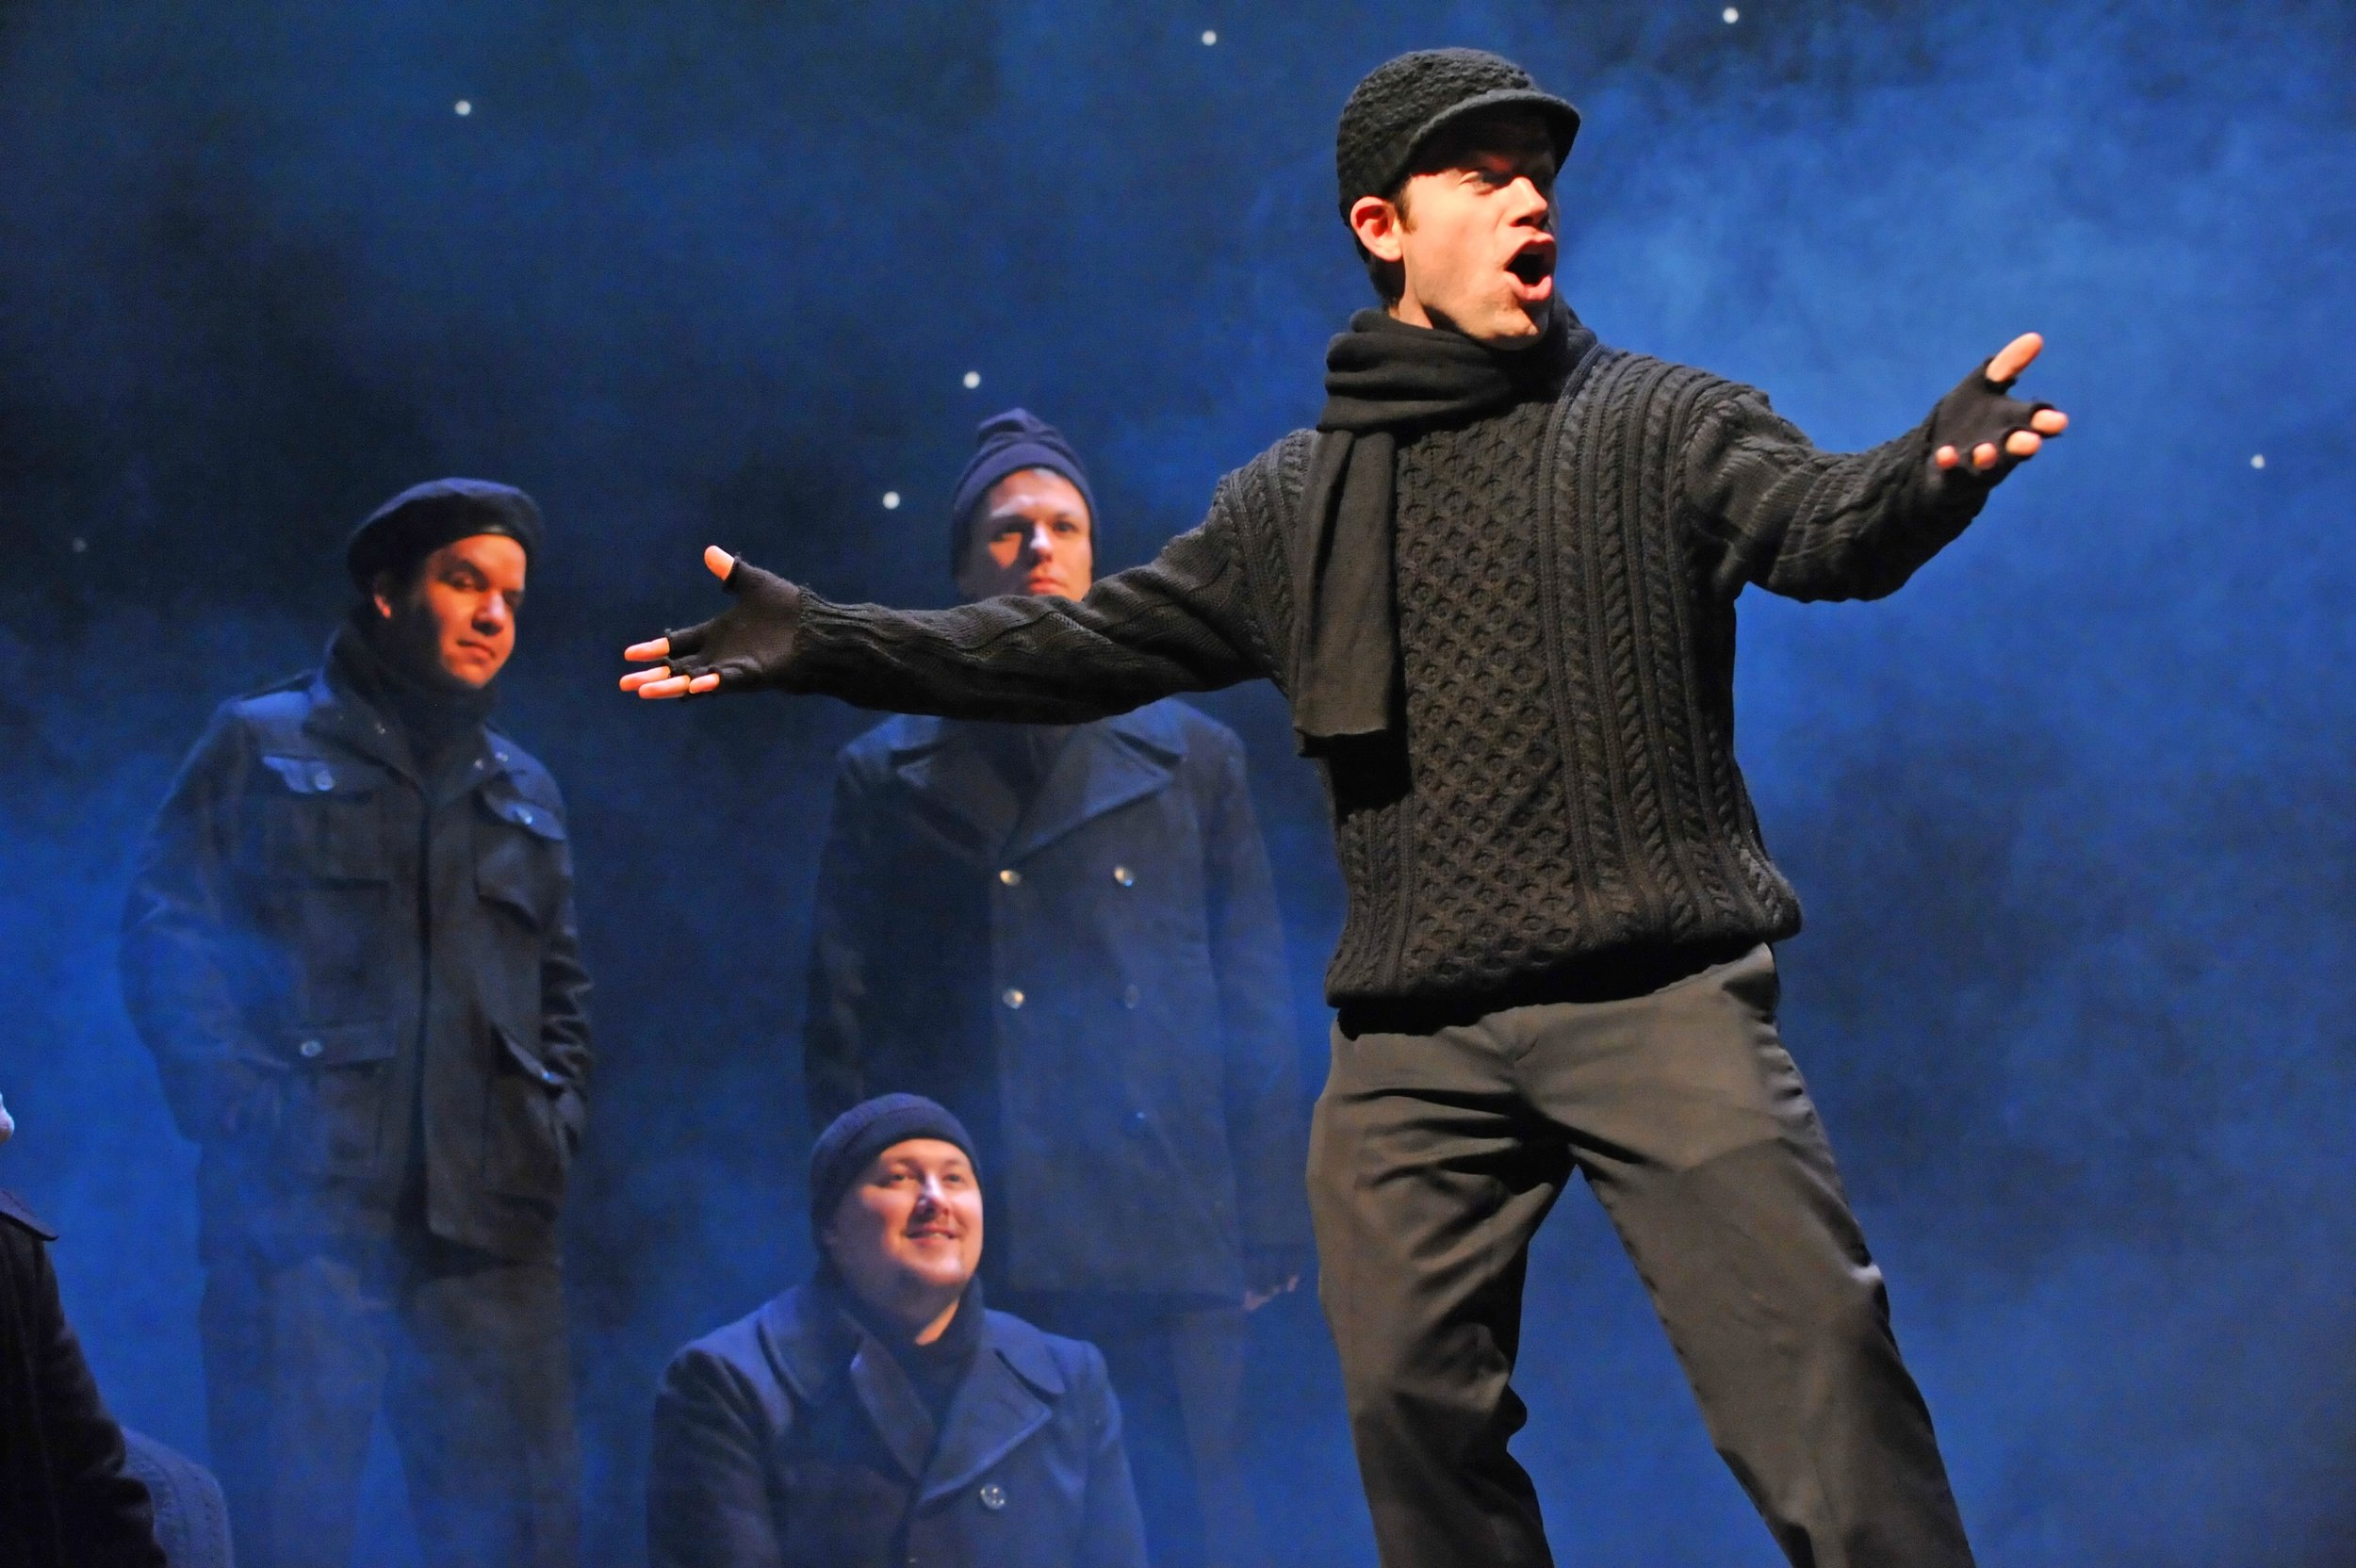 ALL IS CALM: THE CHRISTMAS TRUCE OF 1914, A co-production of Cantus, Theater Latté Da, and Hennepin Theatre Trust at the Pantages Theatre, 2013